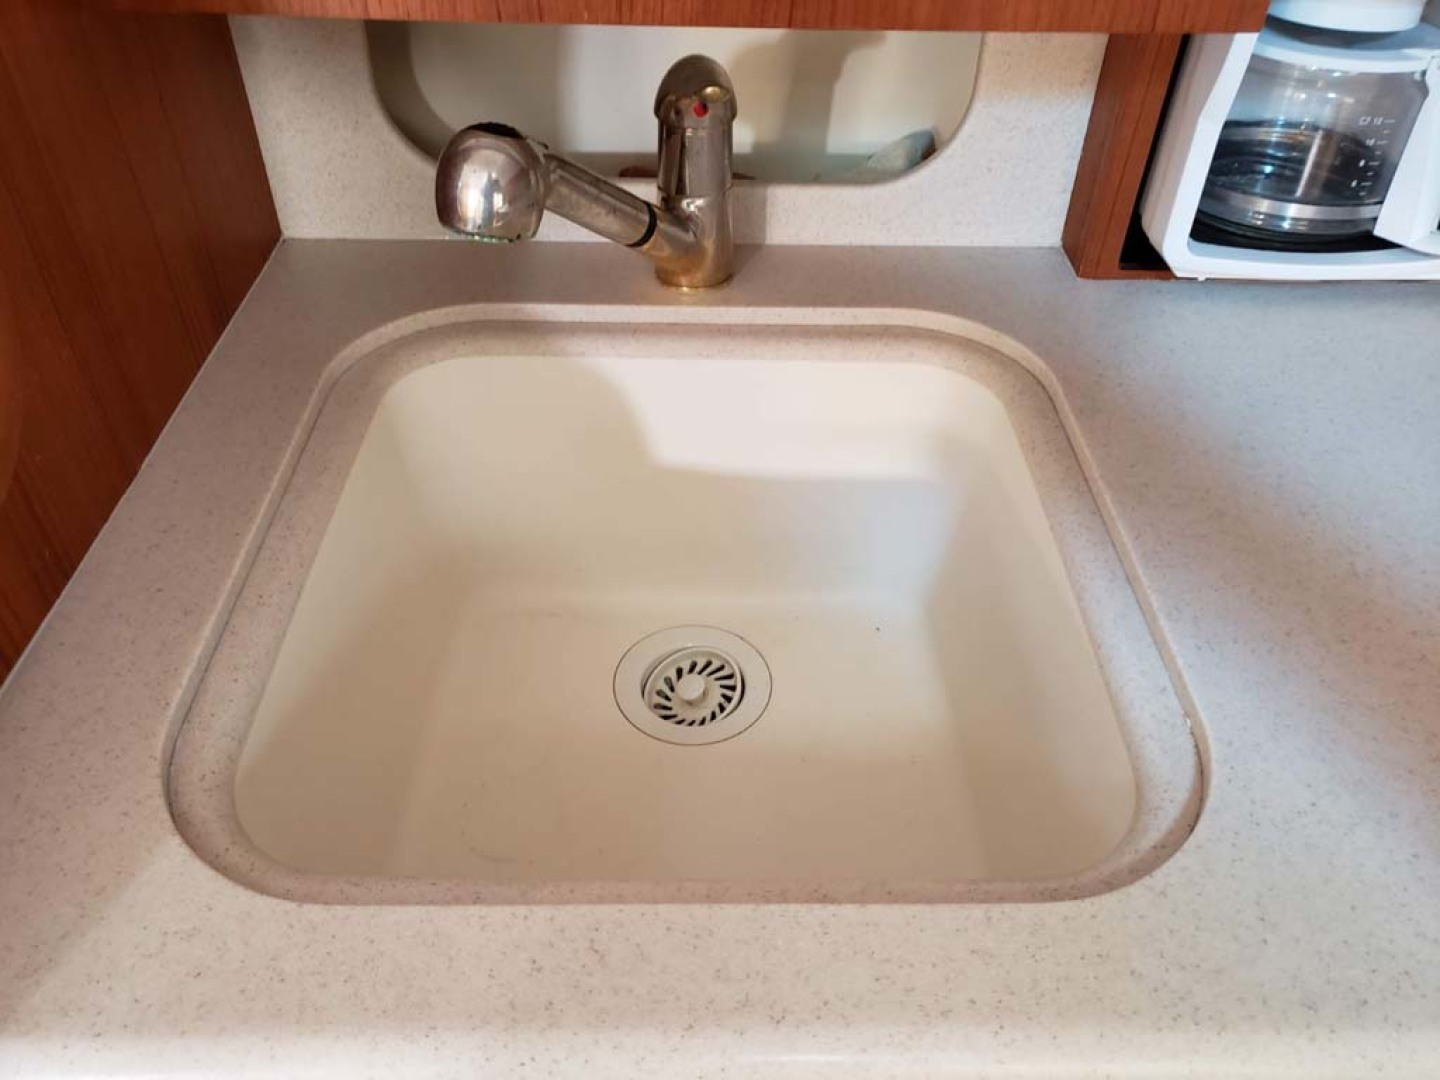 Pursuit-3800 Express 2004-CAN MAN Montauk-New York-United States-Deep Sink With Pull Out Faucet-1250922 | Thumbnail